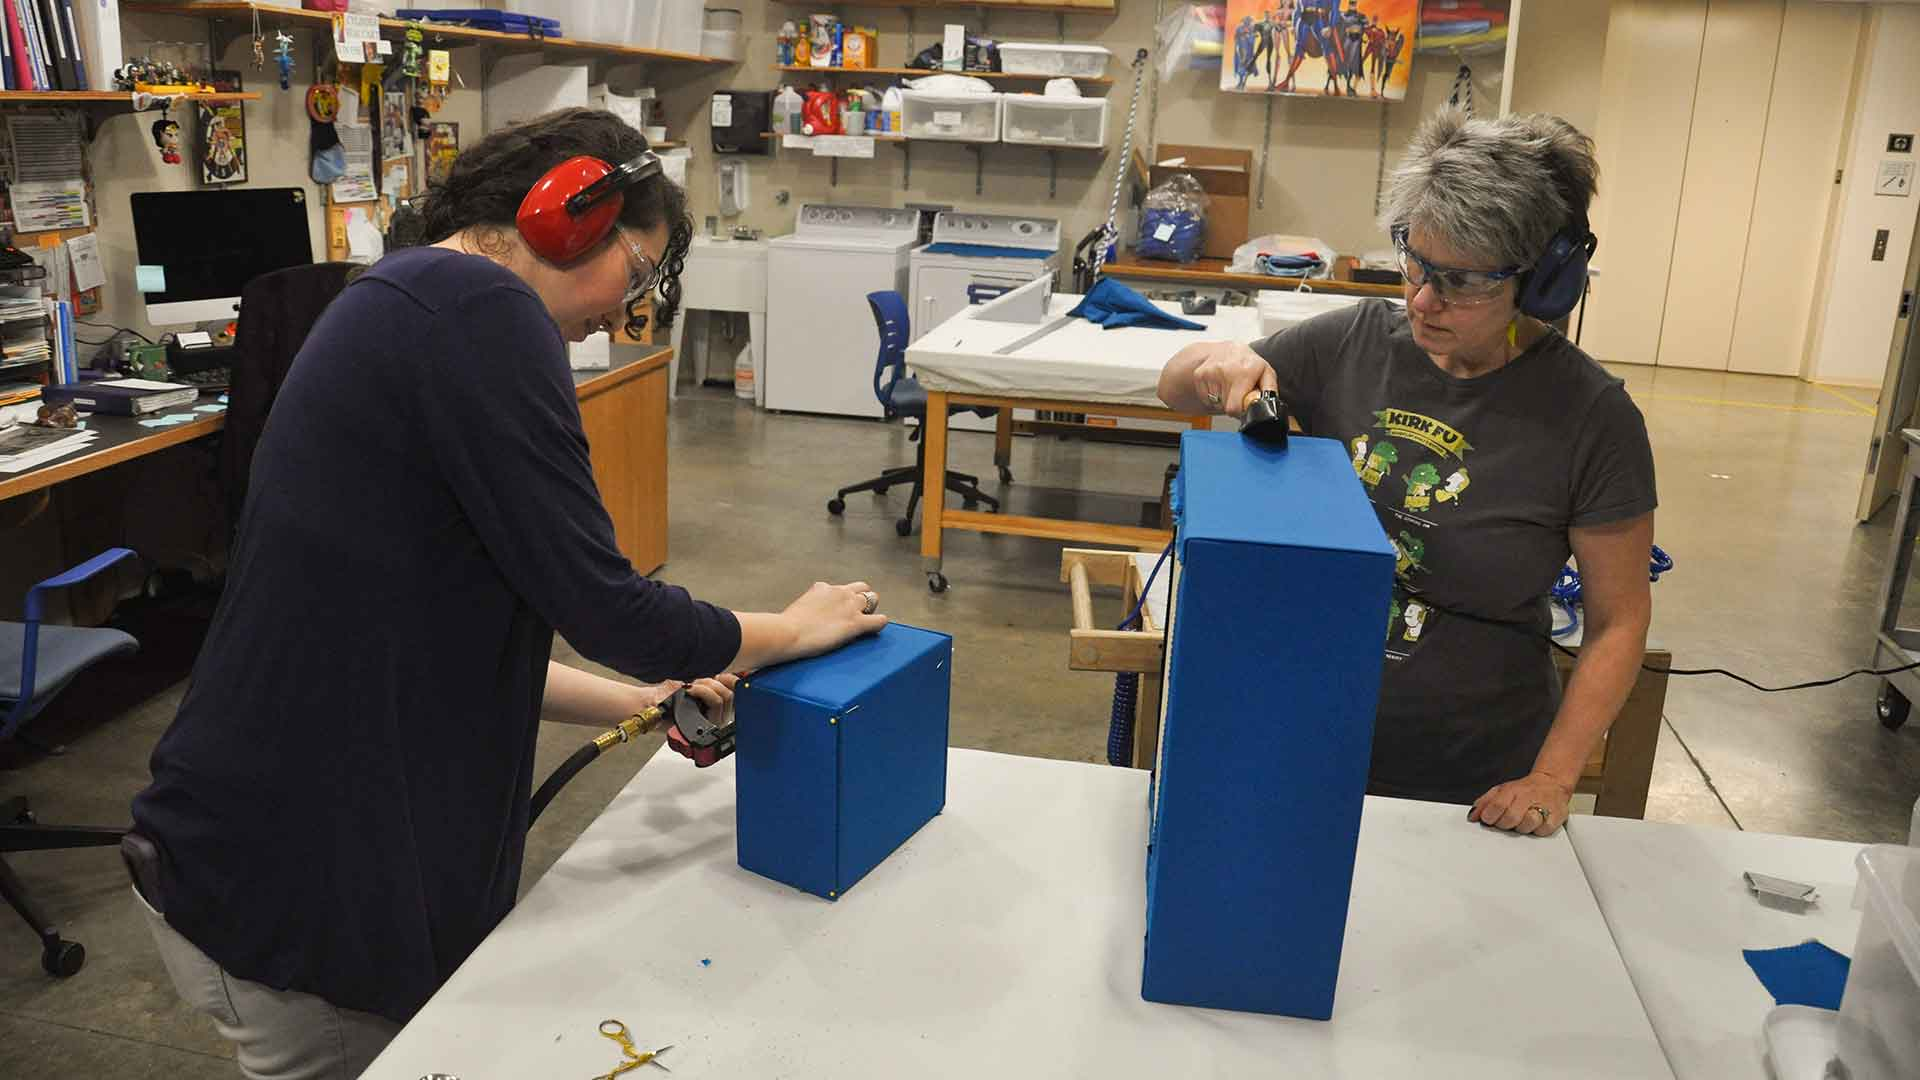 Two staff members in an prep area prepare fabric covered blocks for the exhibit